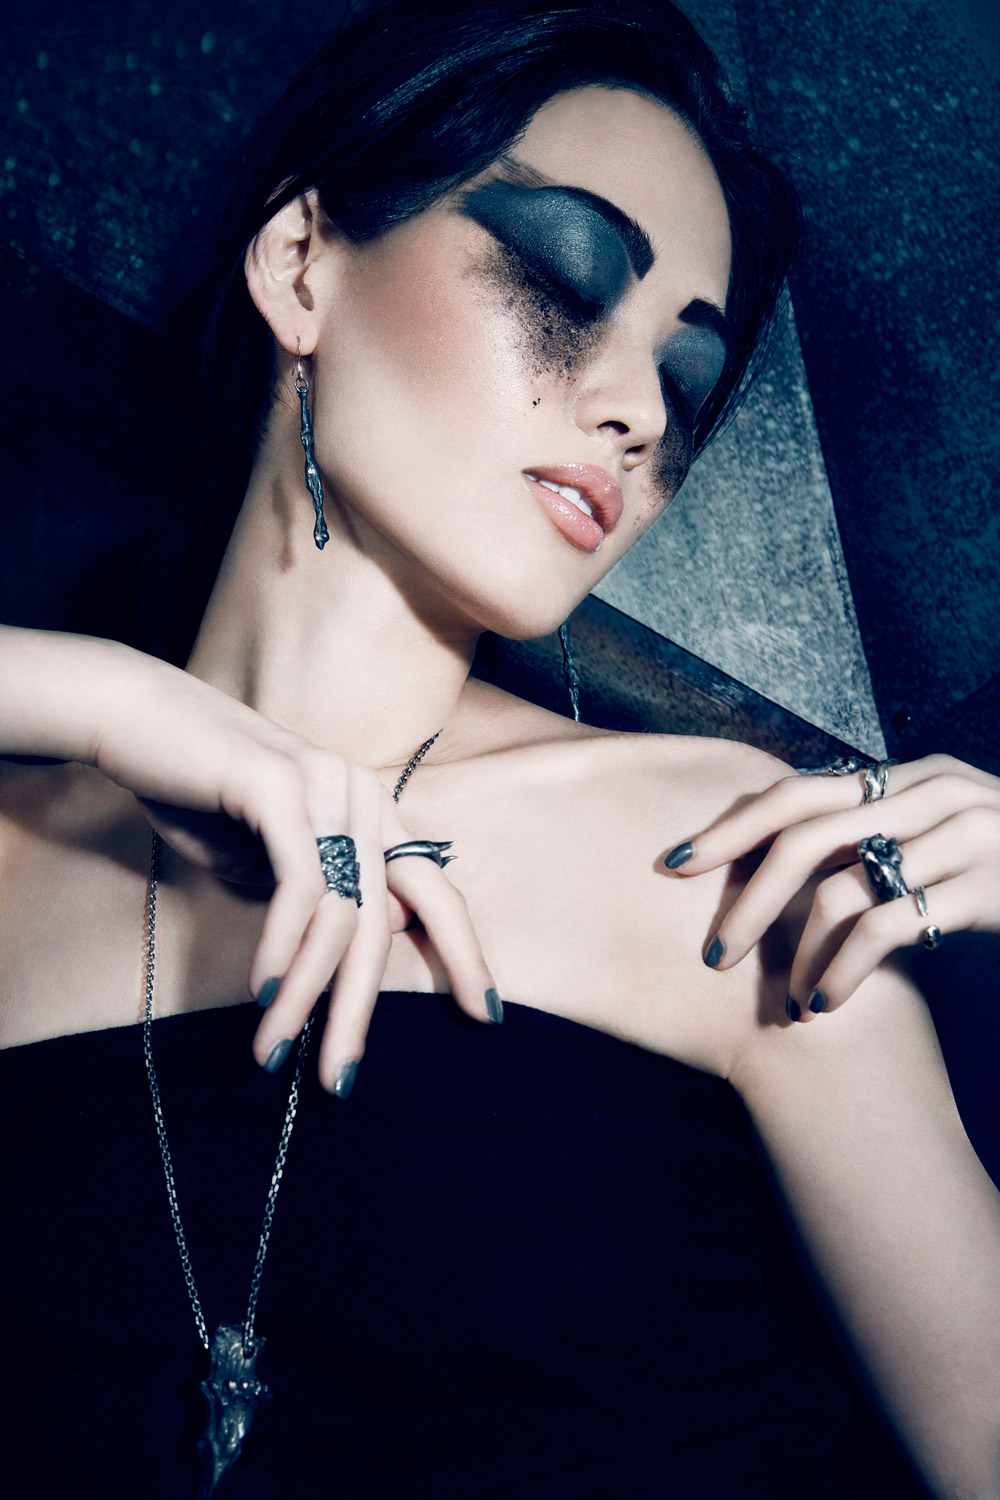 FROM THE EARTH - Jewellery designer Gaspard Hex wants to rediscover the spirituality of the earth through his creations